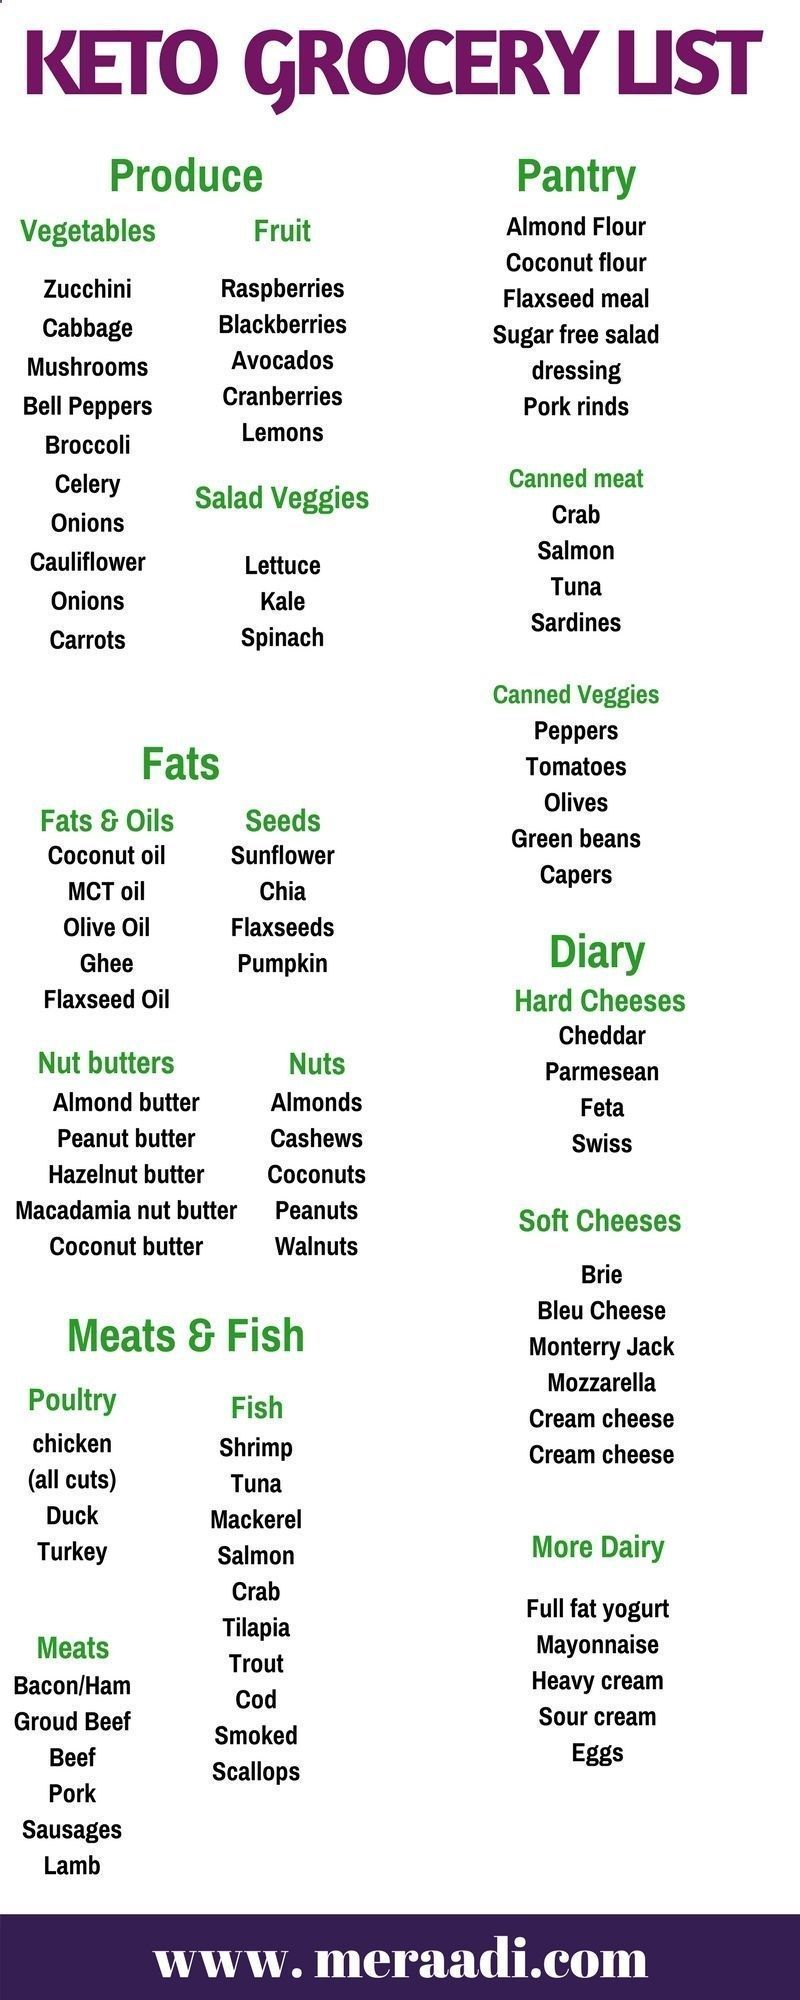 This Keto Grocery List Is The Best This Keto Shopping List Has All